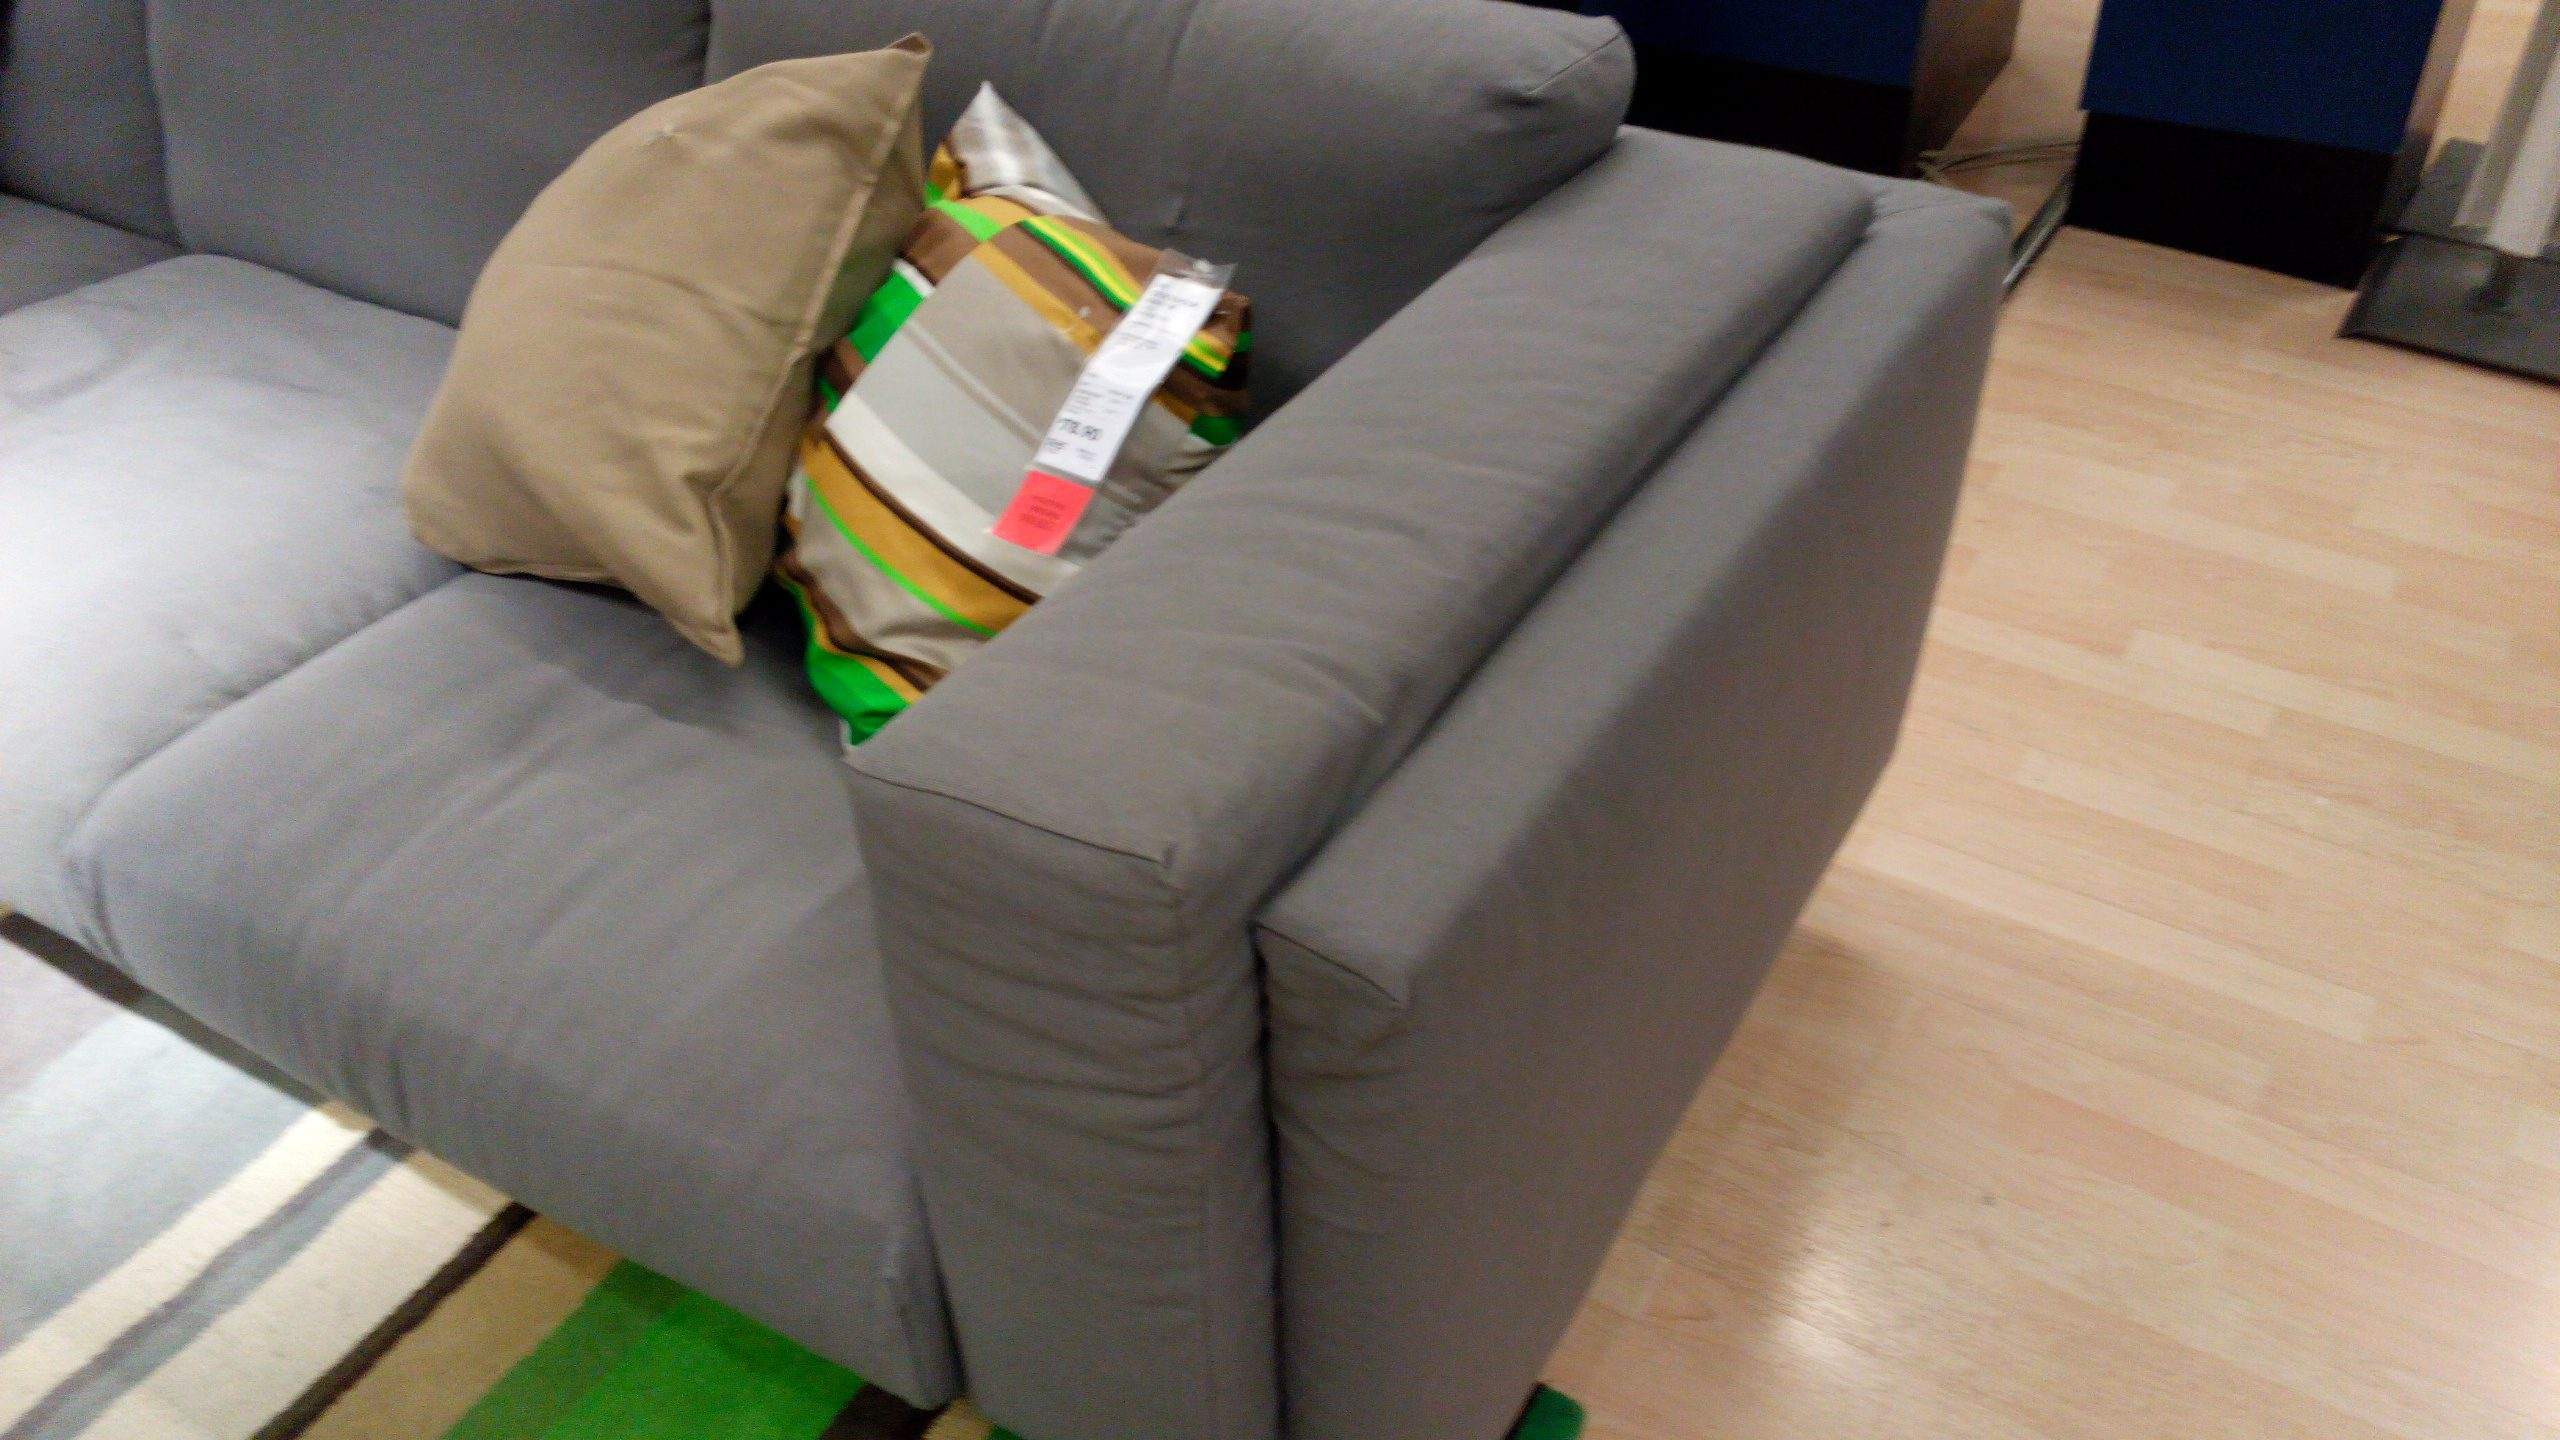 Ikea Sofa Nockeby Test Ikea Nockeby Sofa Review New Ikea Couch Series Mid 2014